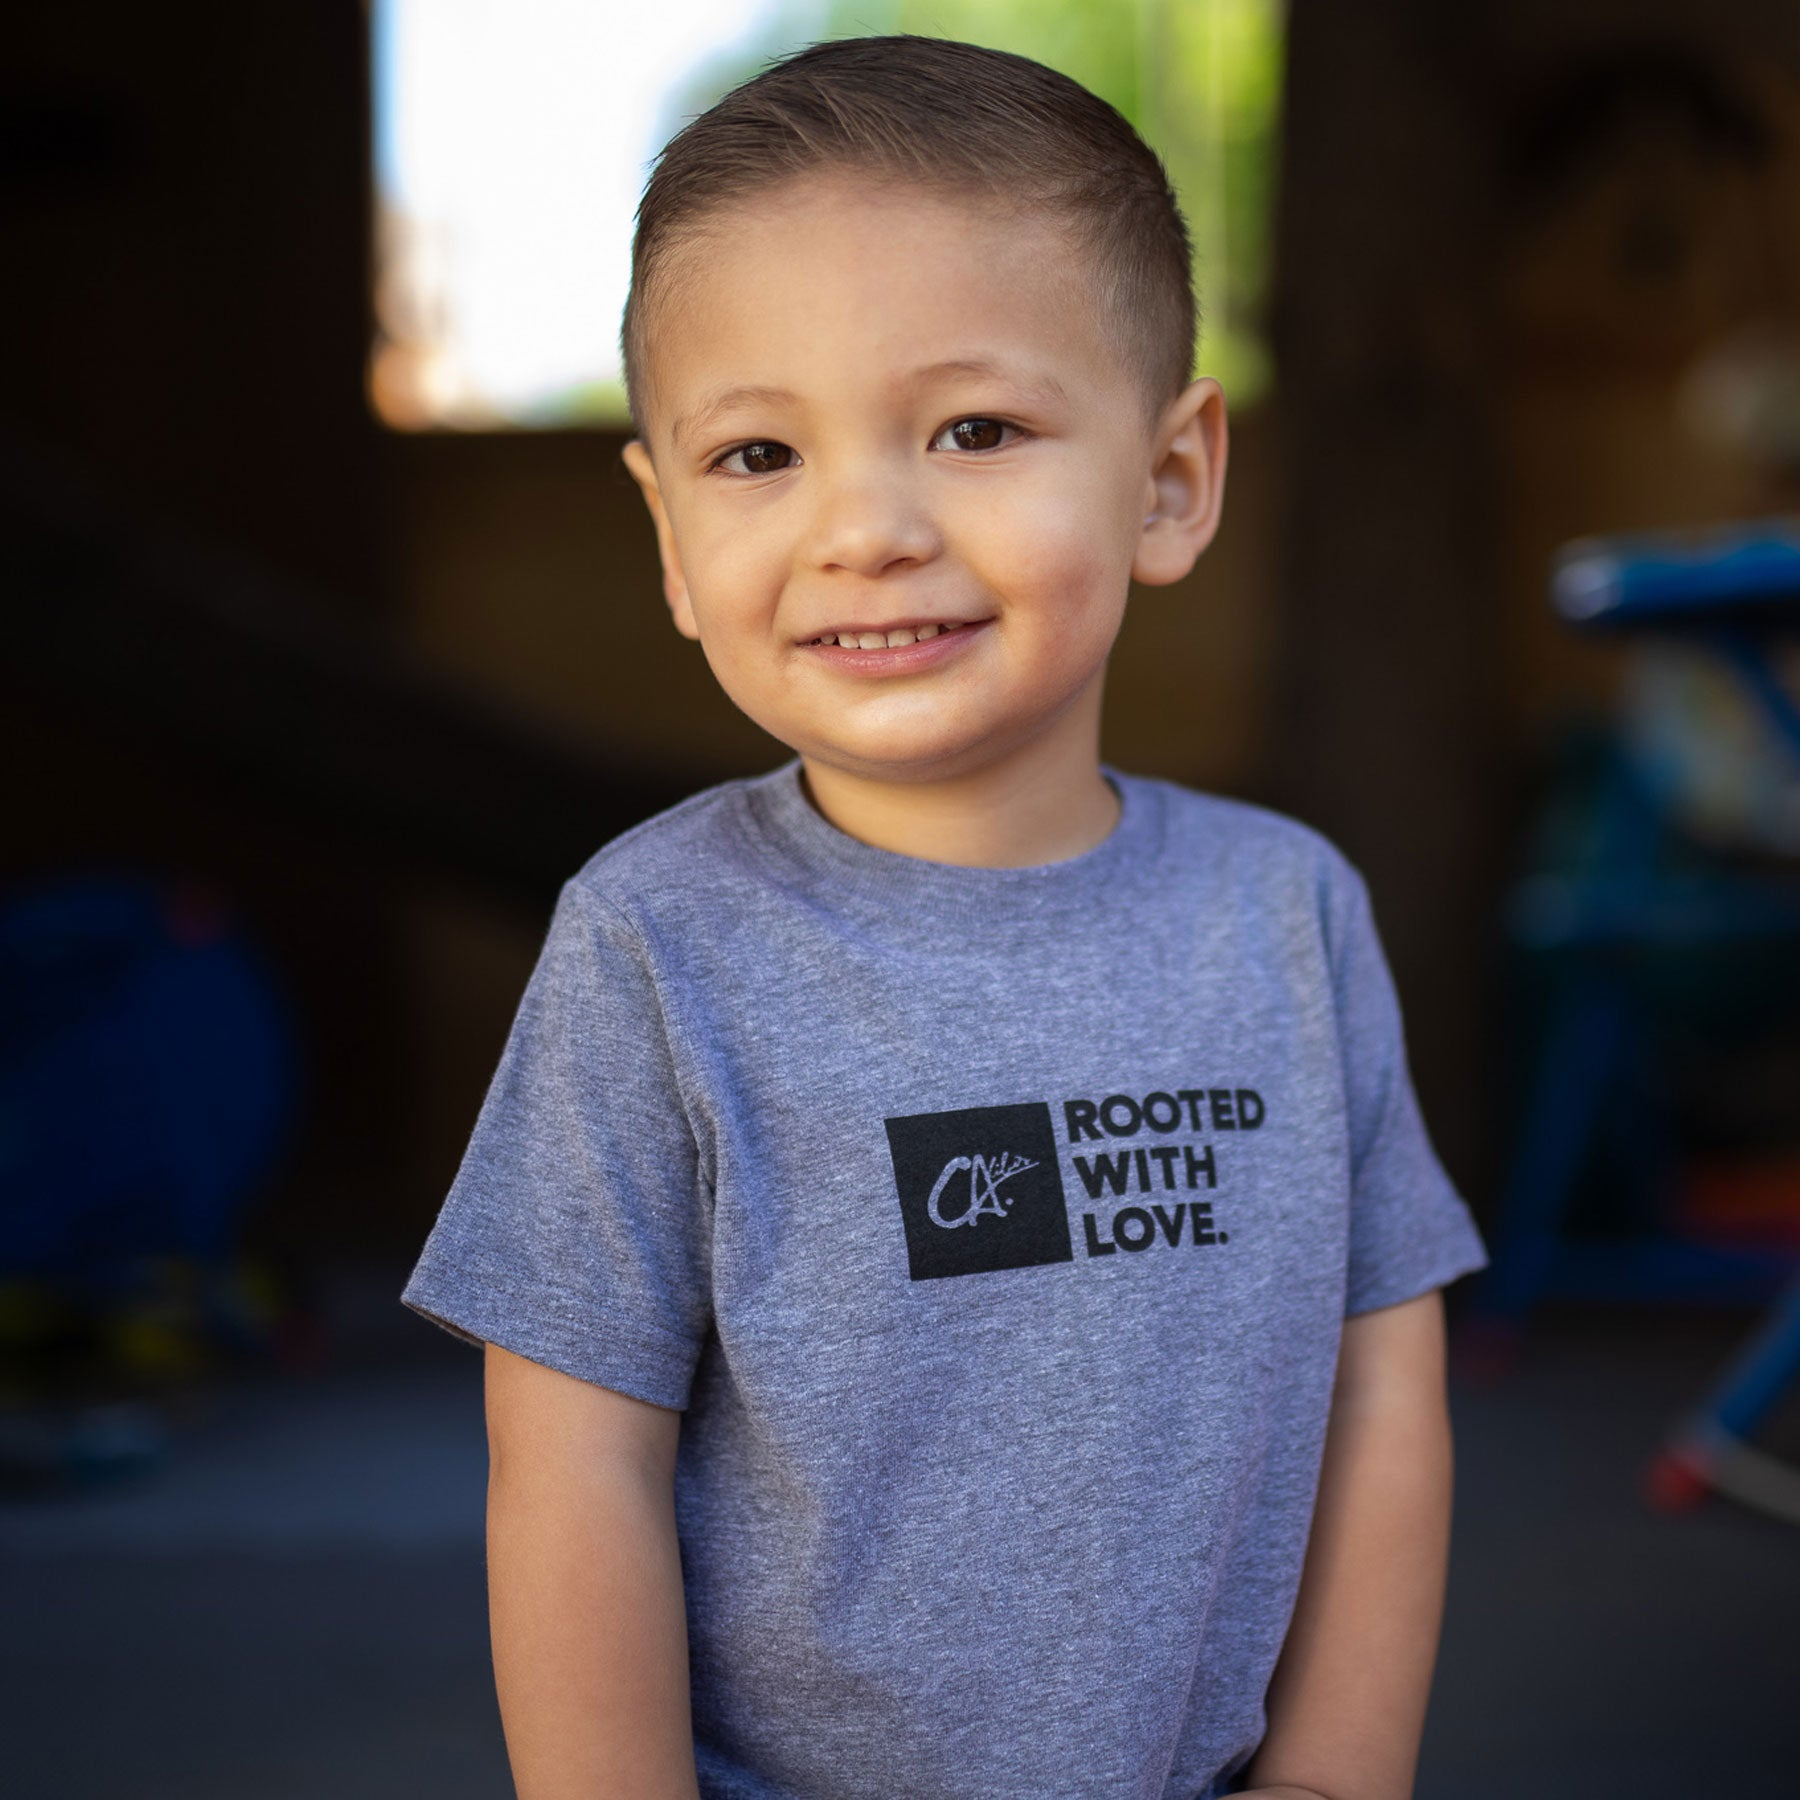 Toddler Rooted With Love Tee by Calibis Clothing